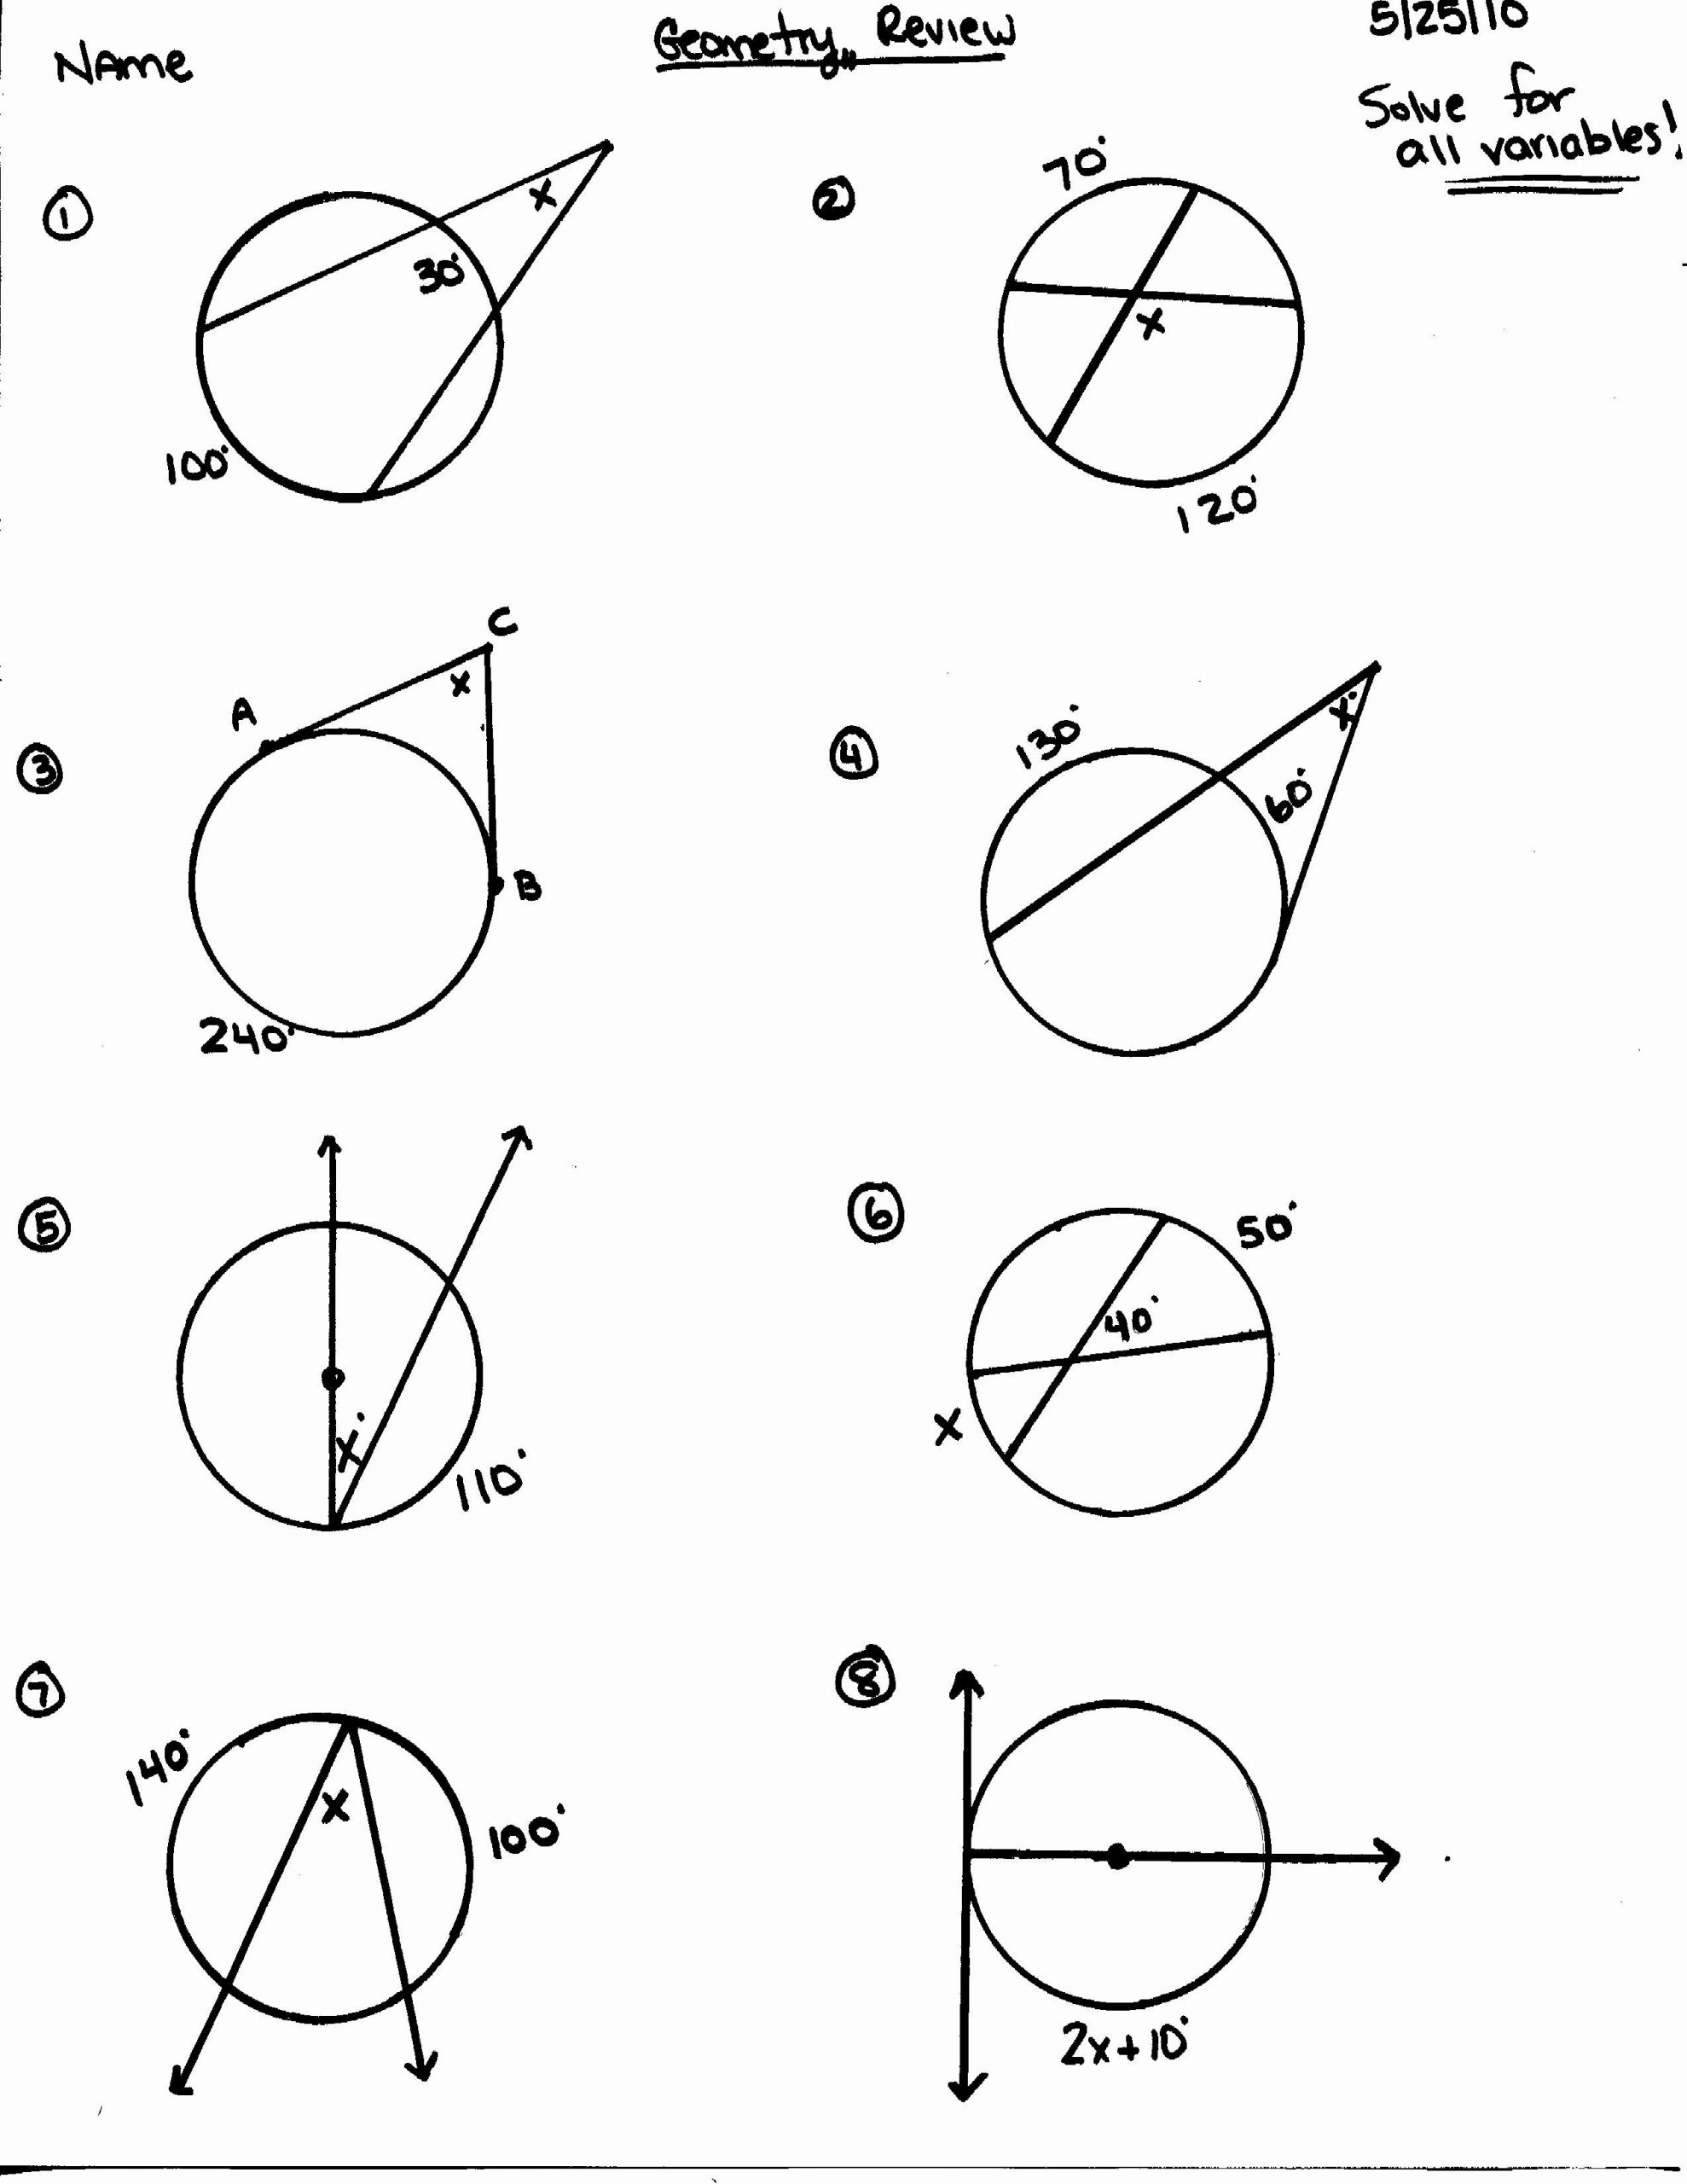 Angles In Circles Worksheet Angles In A Circle Worksheet Lovely Circle theorems Match Up